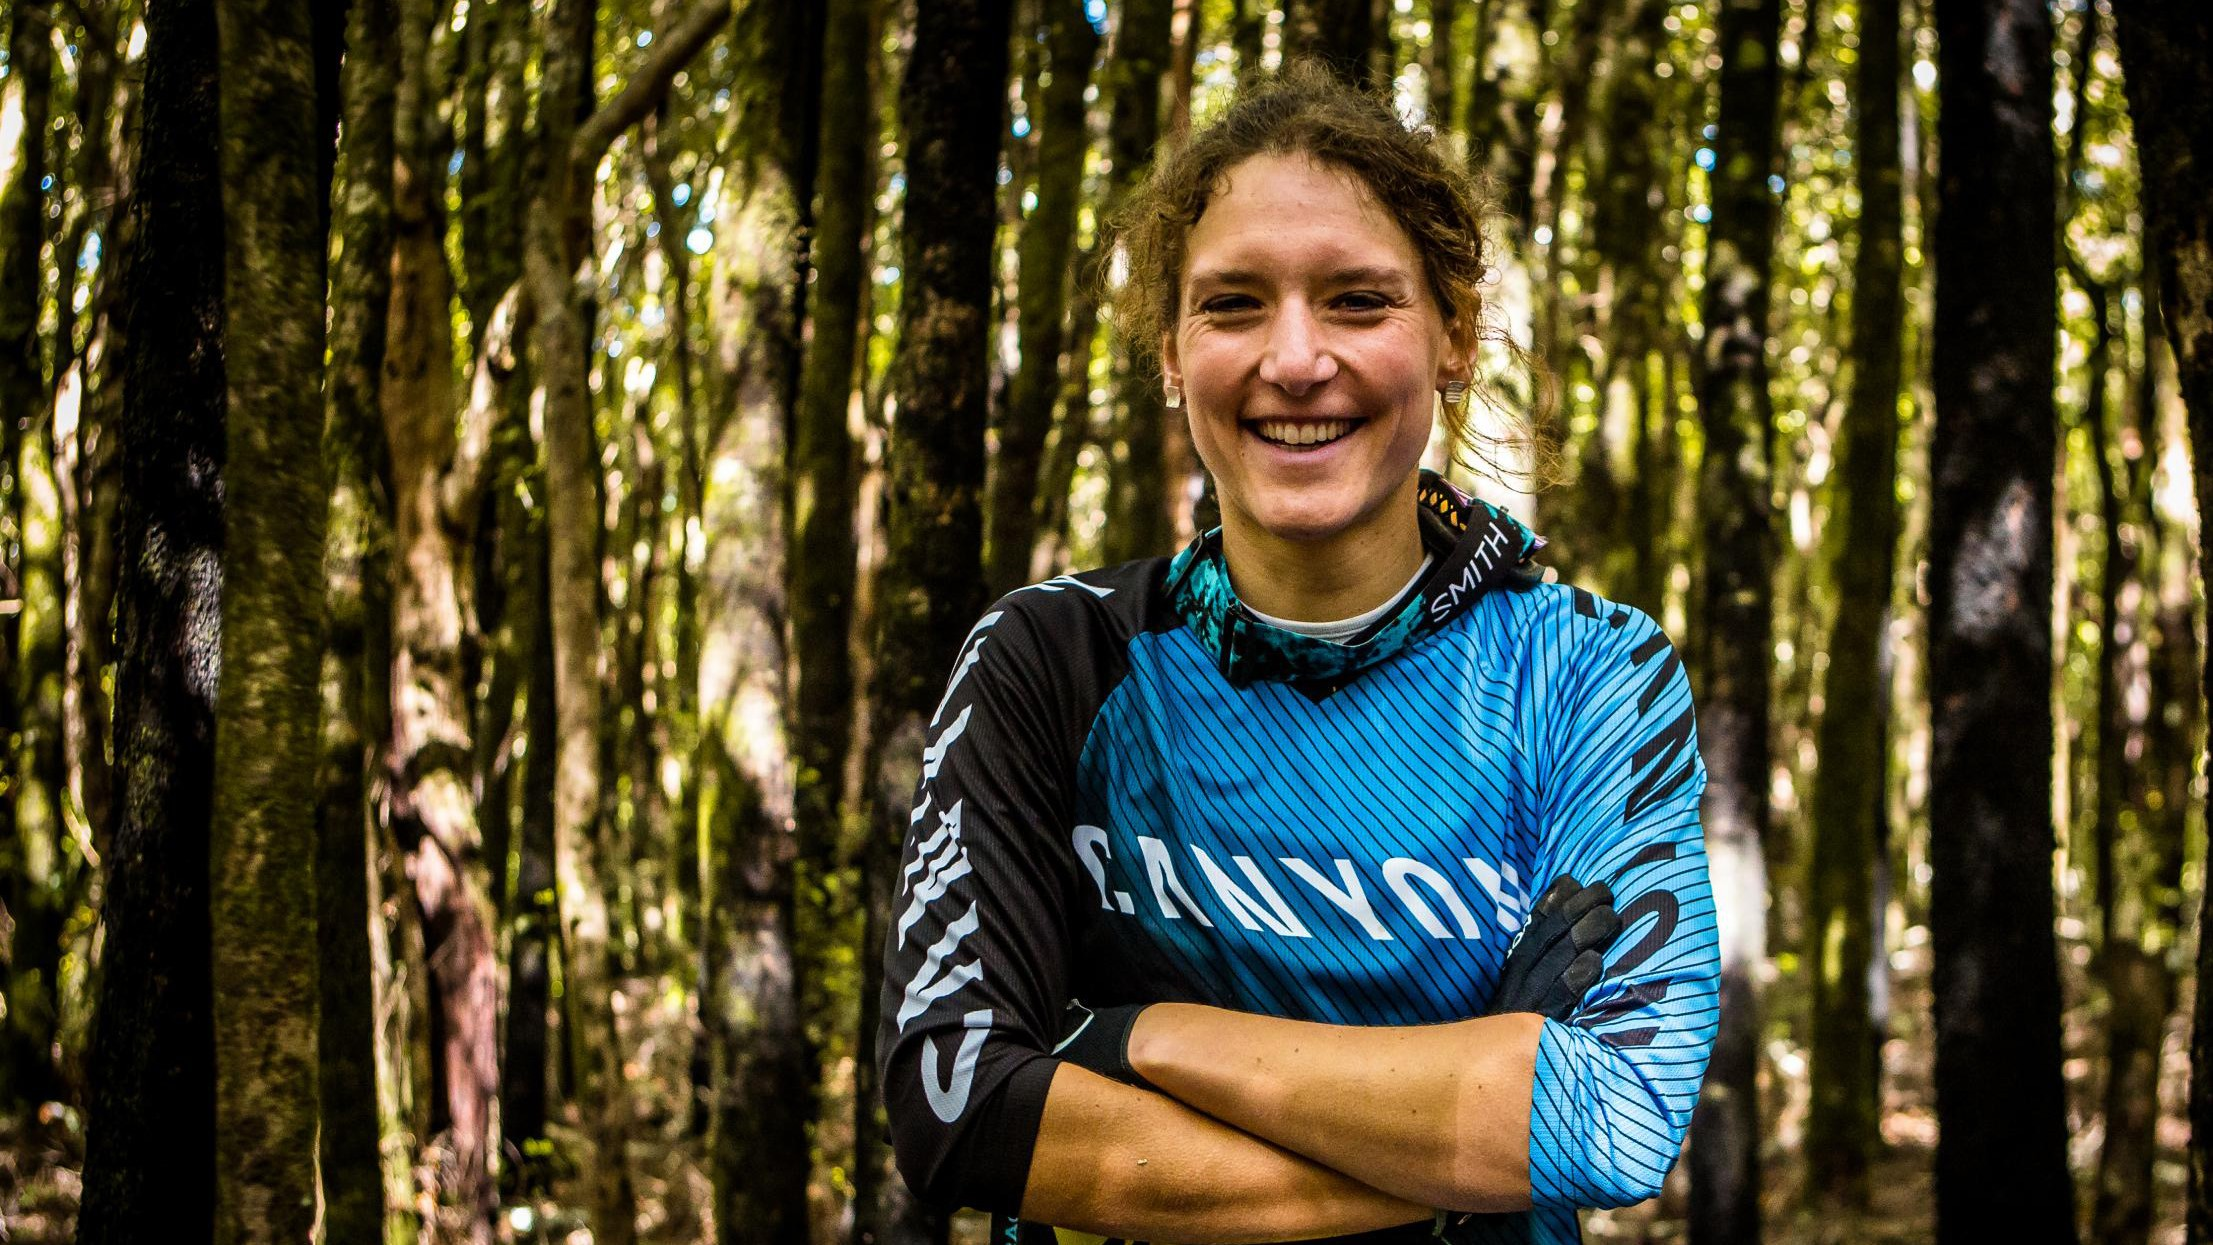 For Thoma, the lure of enduro is in the variety of riding it encapsulates